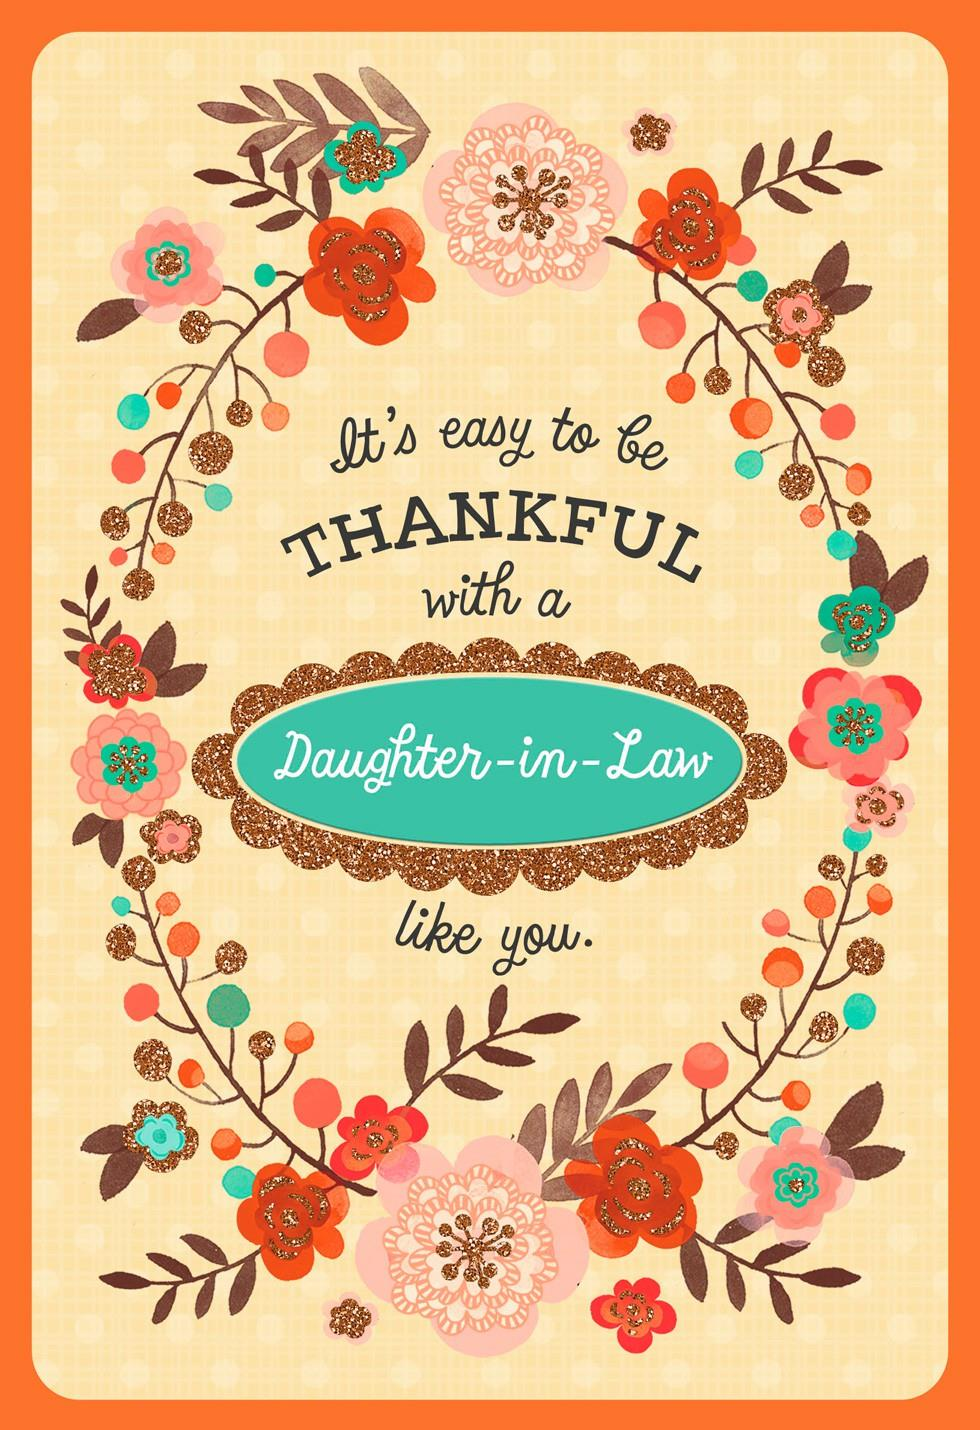 Floral Wreath Thanksgiving Card With Customizable Female